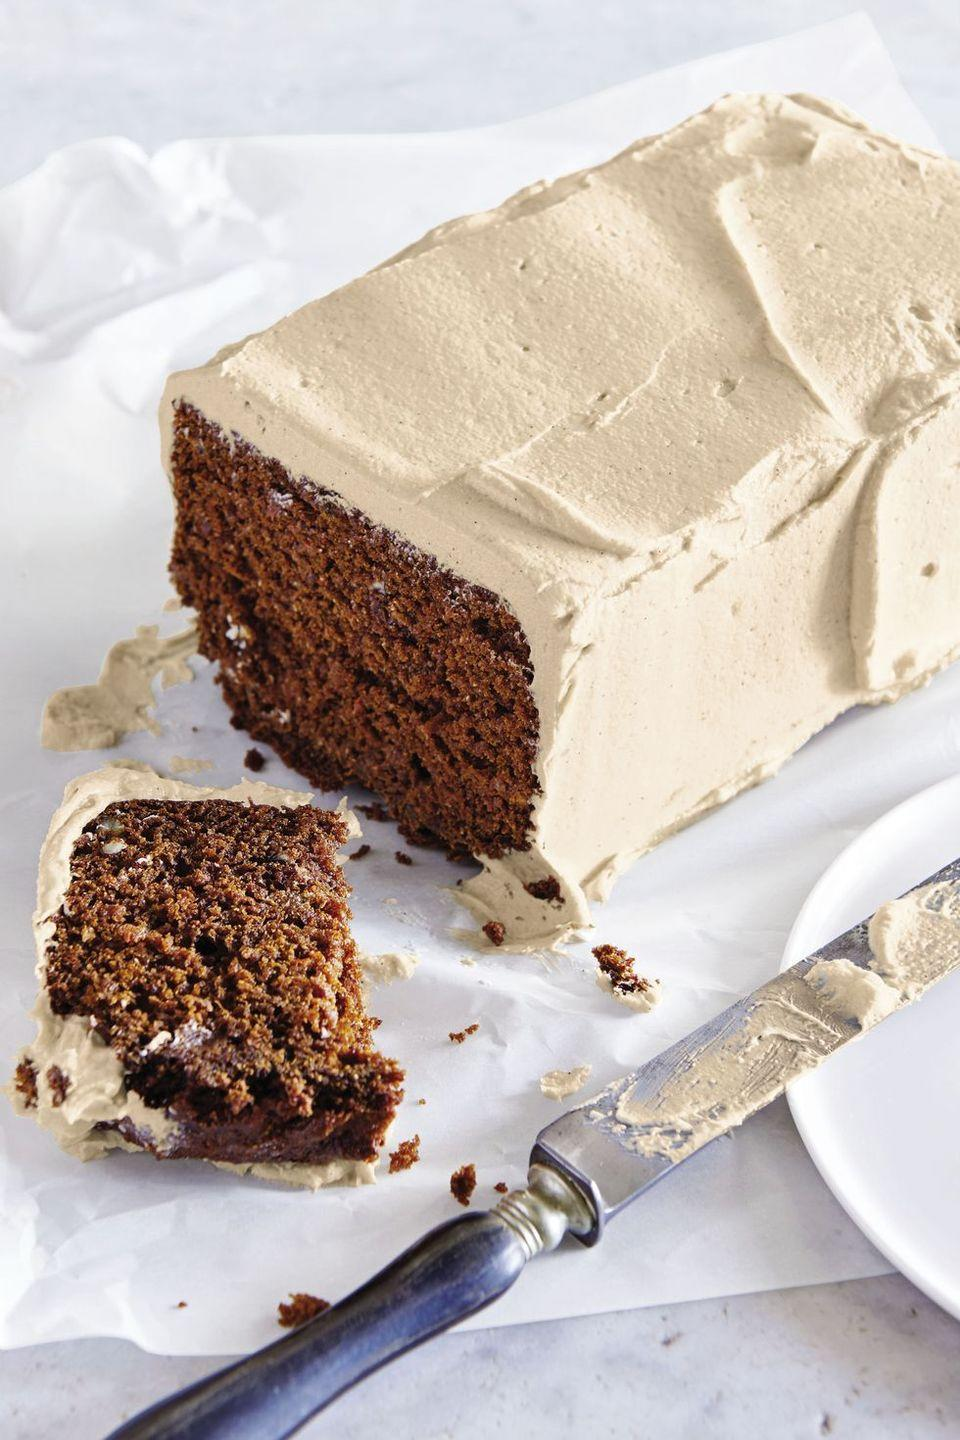 "<p>This recipe from ""The Happy Cook"" by Daphne Oz uses whole-wheat flour in the batter and brown sugar in the frosting for a carrot cake unlike any other.</p><p><em><a href=""https://www.goodhousekeeping.com/food-recipes/dessert/a40367/outlaw-carrot-cake-with-brown-sugar-butter-cream-recipe/"" rel=""nofollow noopener"" target=""_blank"" data-ylk=""slk:Get the recipe for Outlaw Carrot Cake with Brown Sugar Butter Cream »"" class=""link rapid-noclick-resp"">Get the recipe for Outlaw Carrot Cake with Brown Sugar Butter Cream »</a></em></p>"